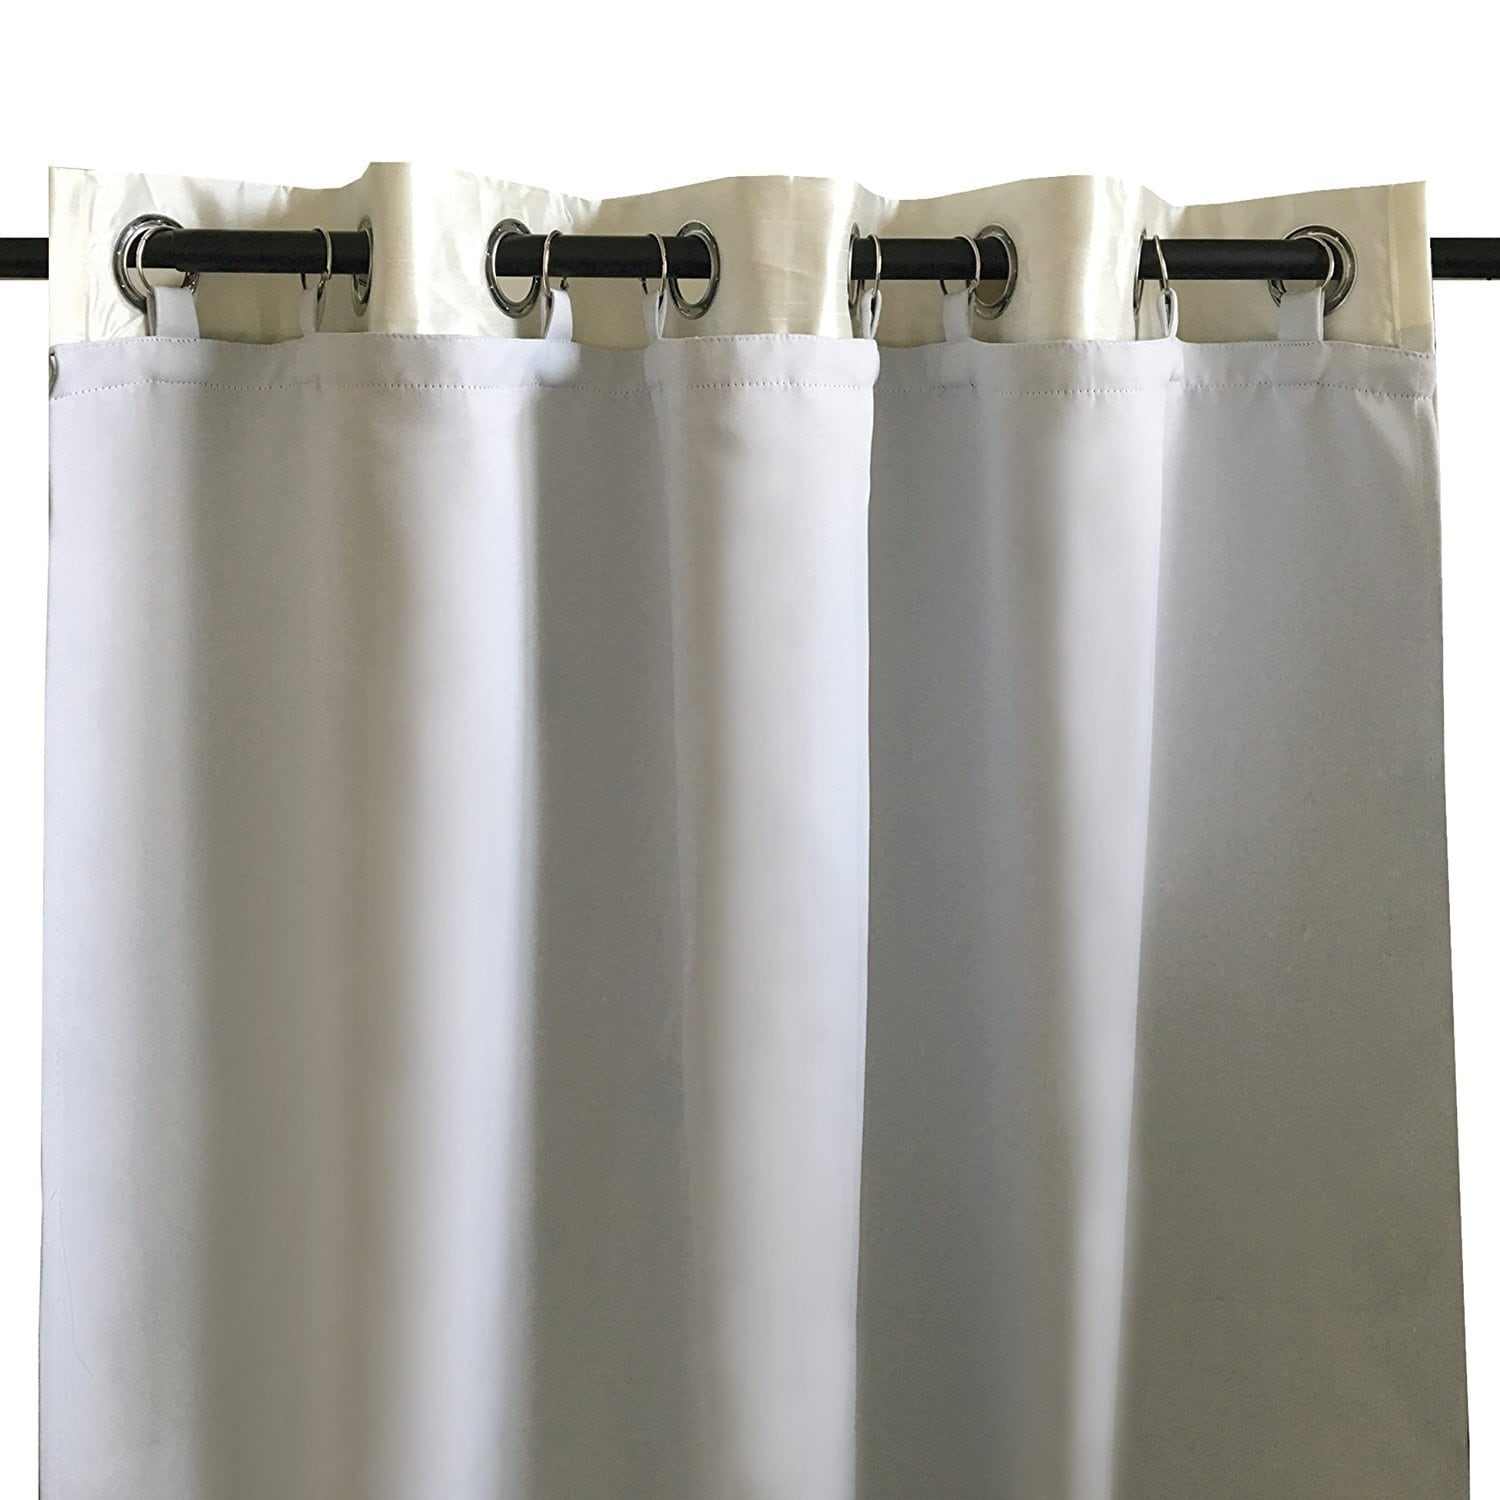 white of short photograph liner top eclipse fabric blackout drape full tables fascinating ultimate coffee curtain present curtains size best panels tab graceful for drapes